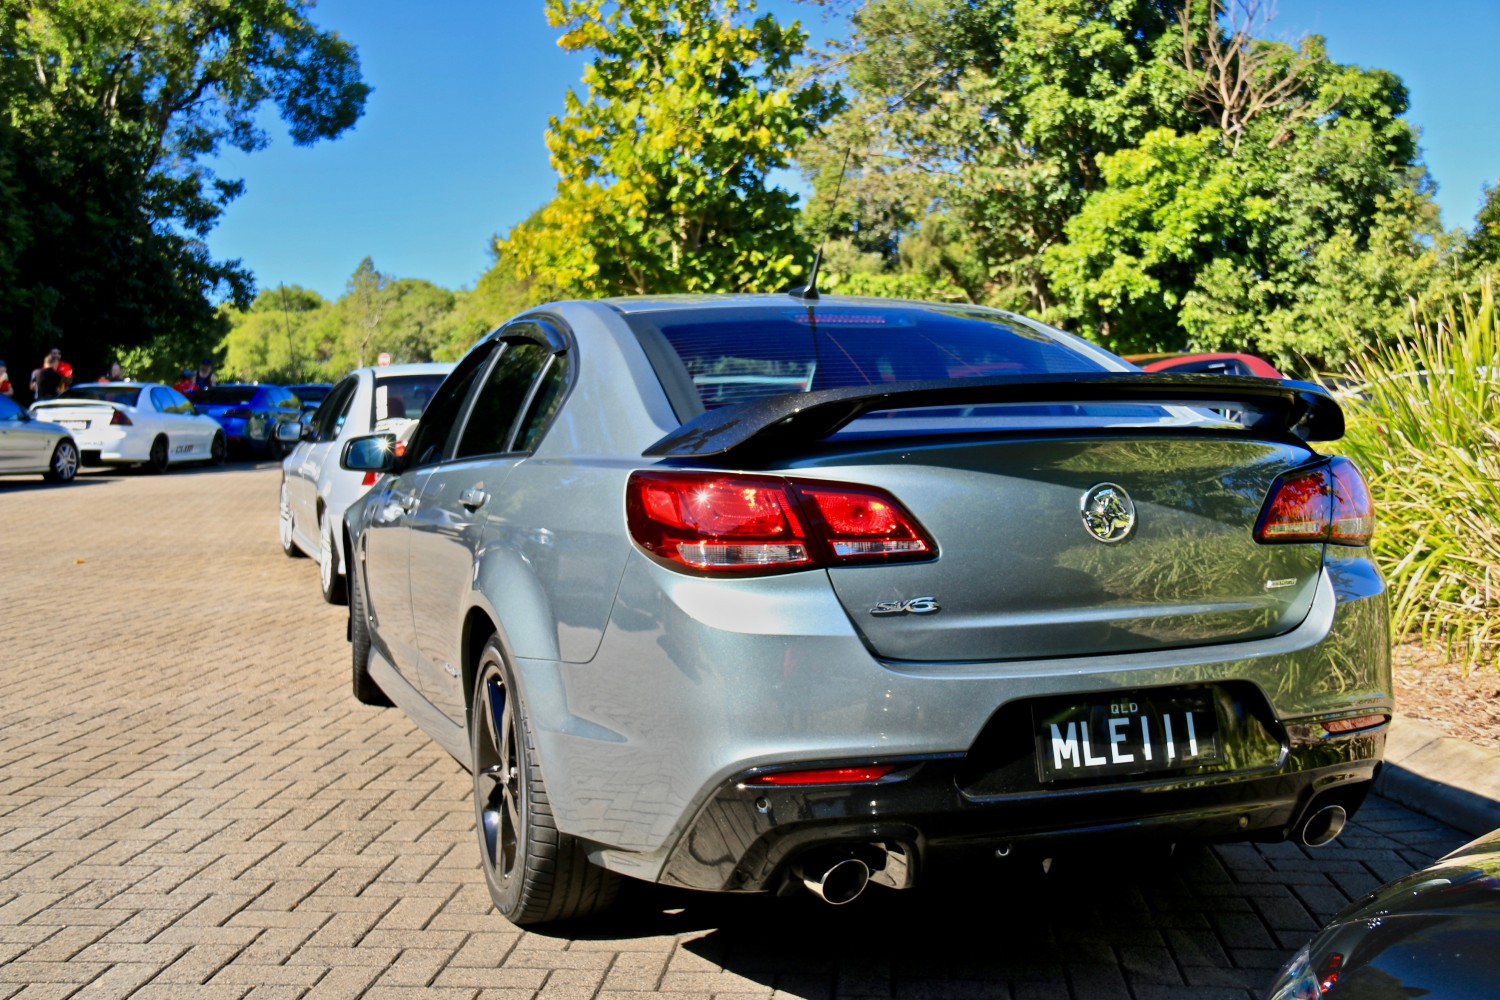 2016 Holden Commodore, Sv6, Black Edition - MitchEsler - Shannons Club